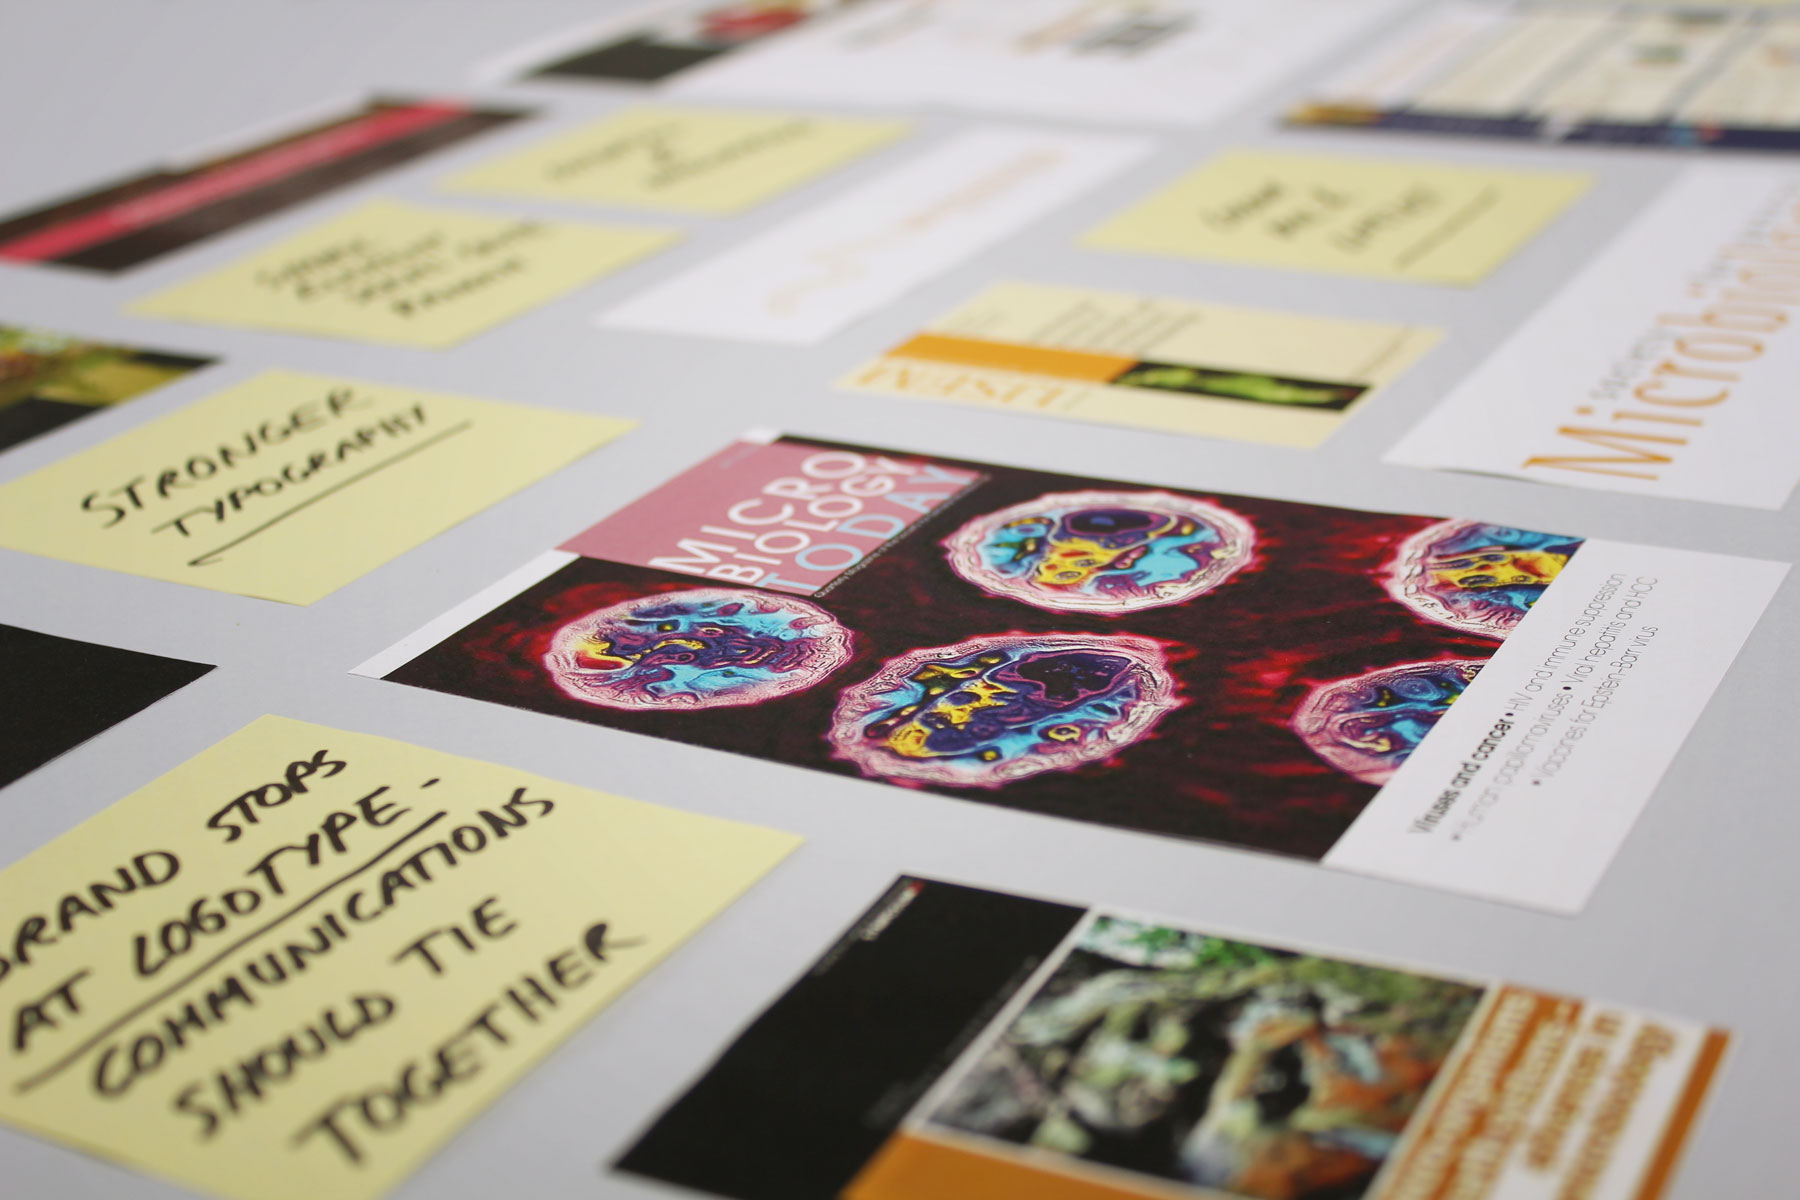 Early stages of the project were centred on identifying issues within the brand.